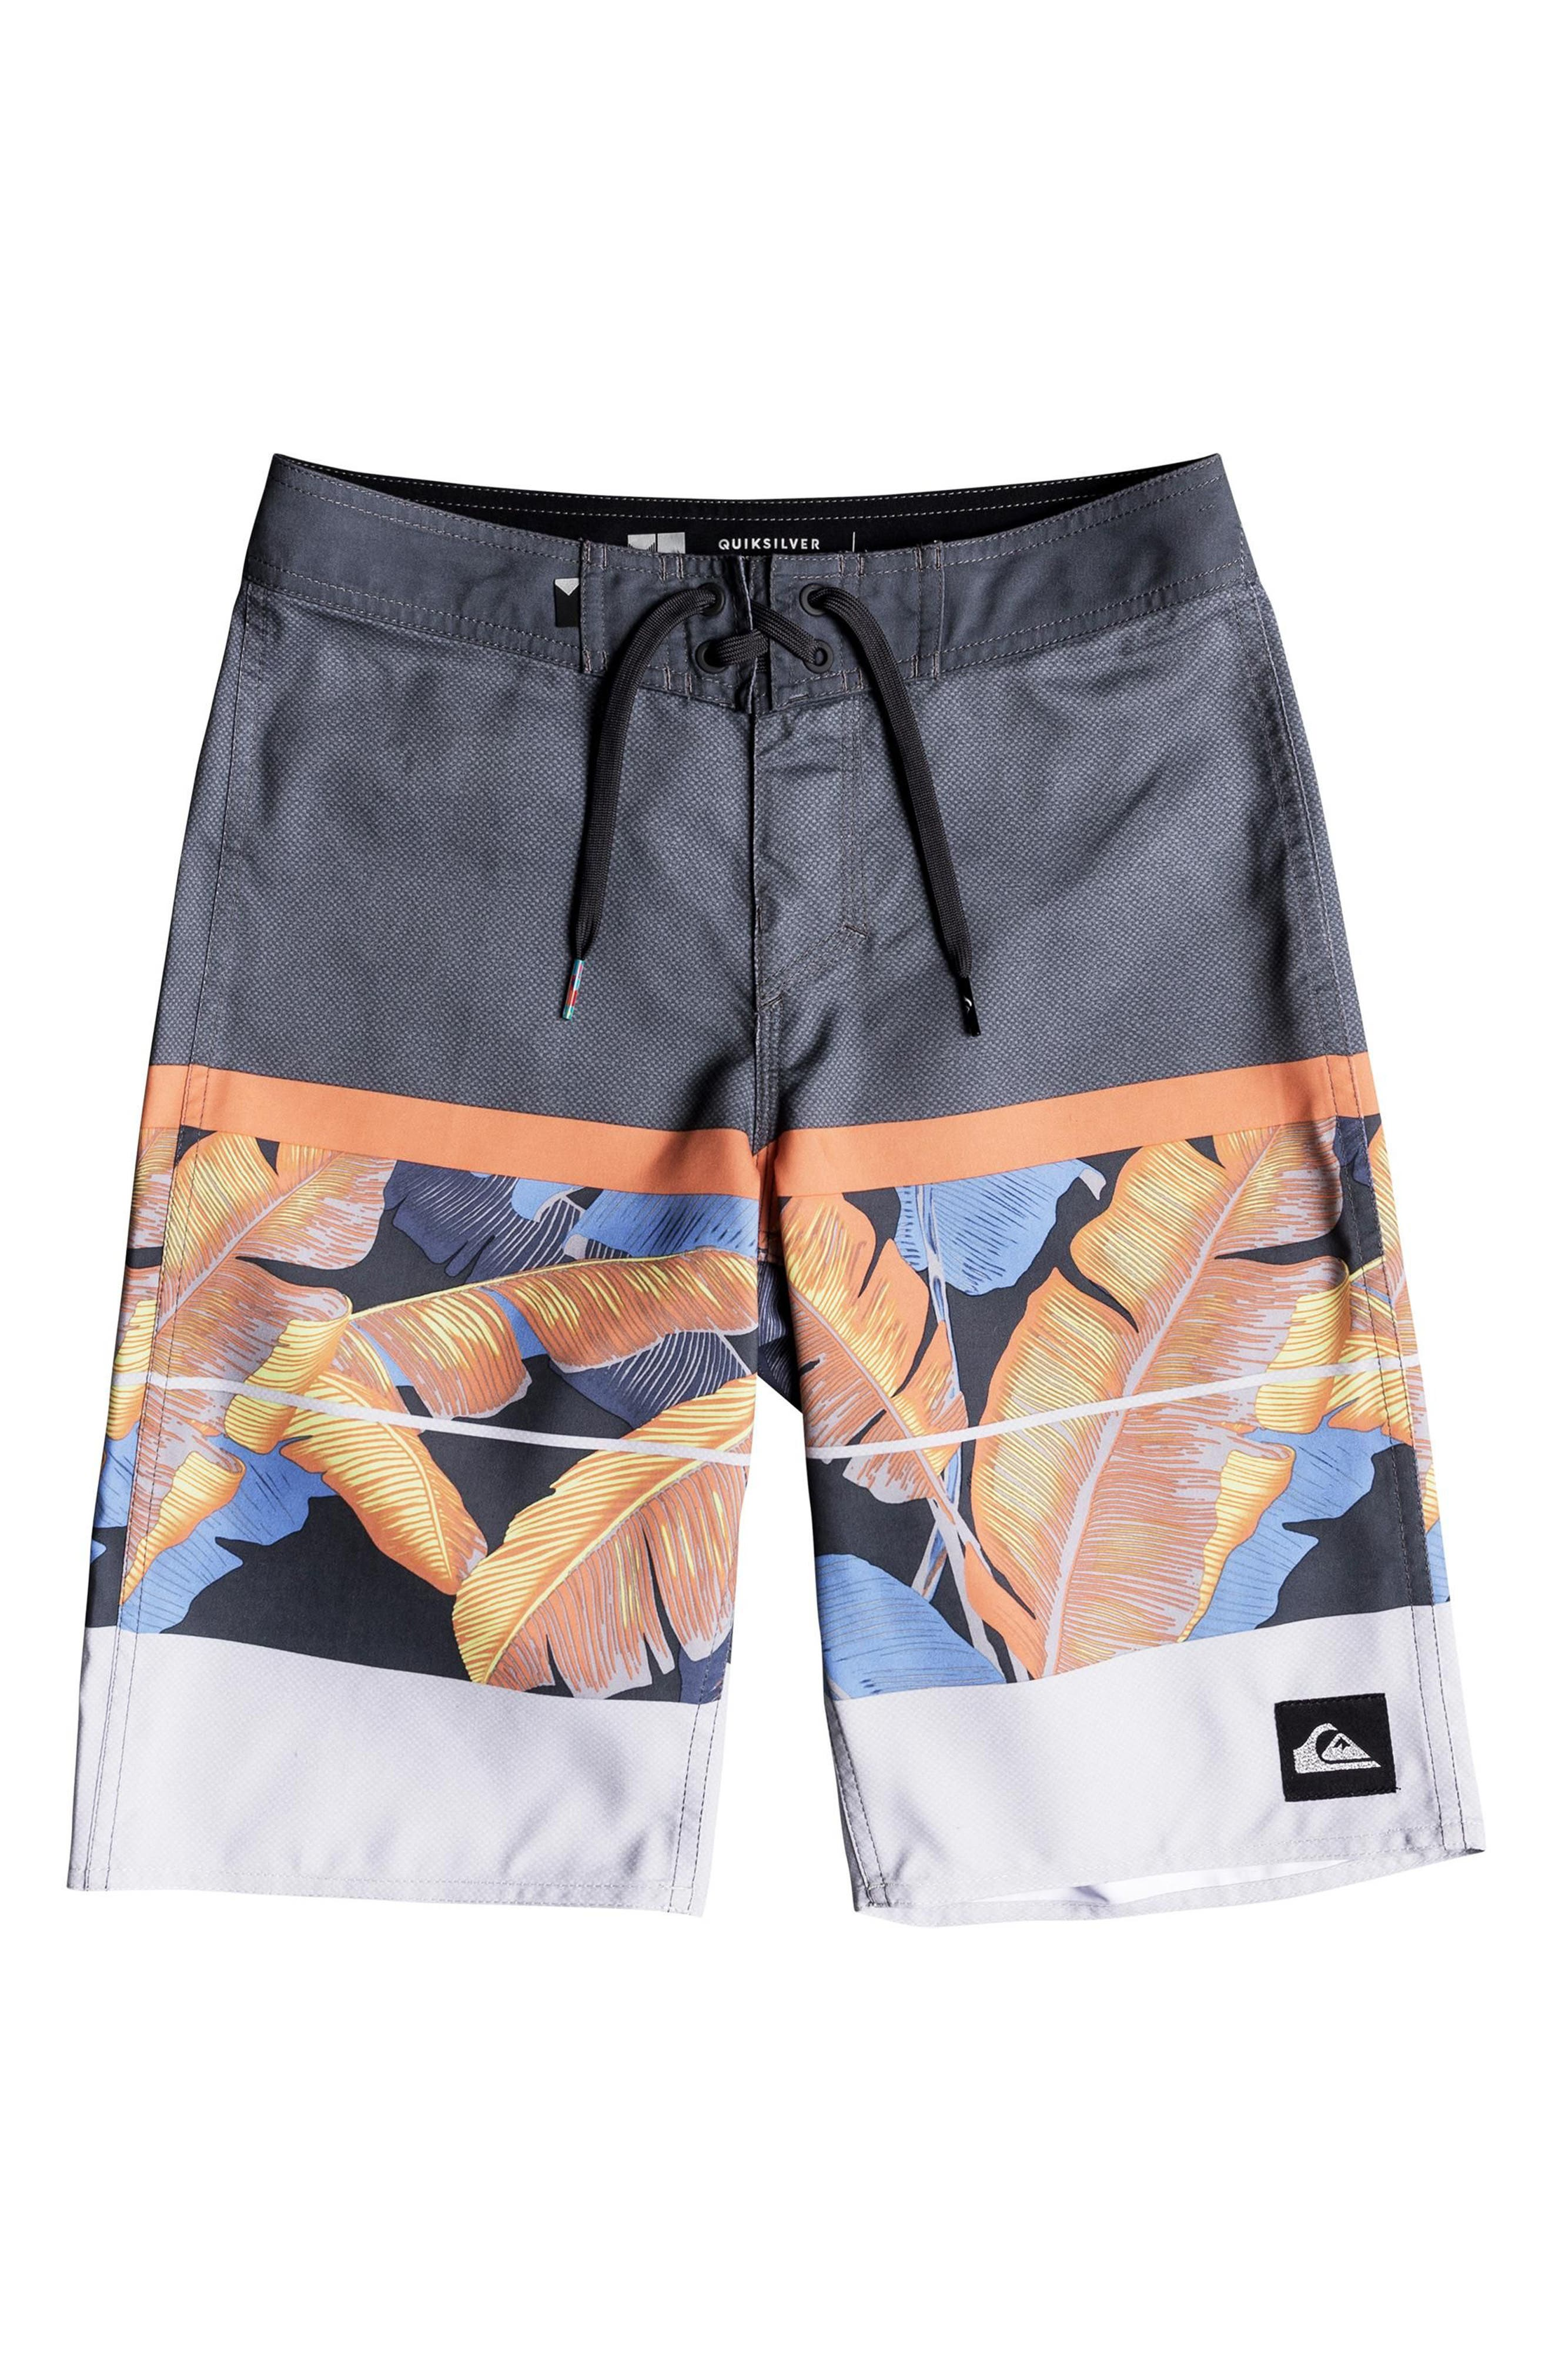 Slab Island Board Shorts,                         Main,                         color, 005